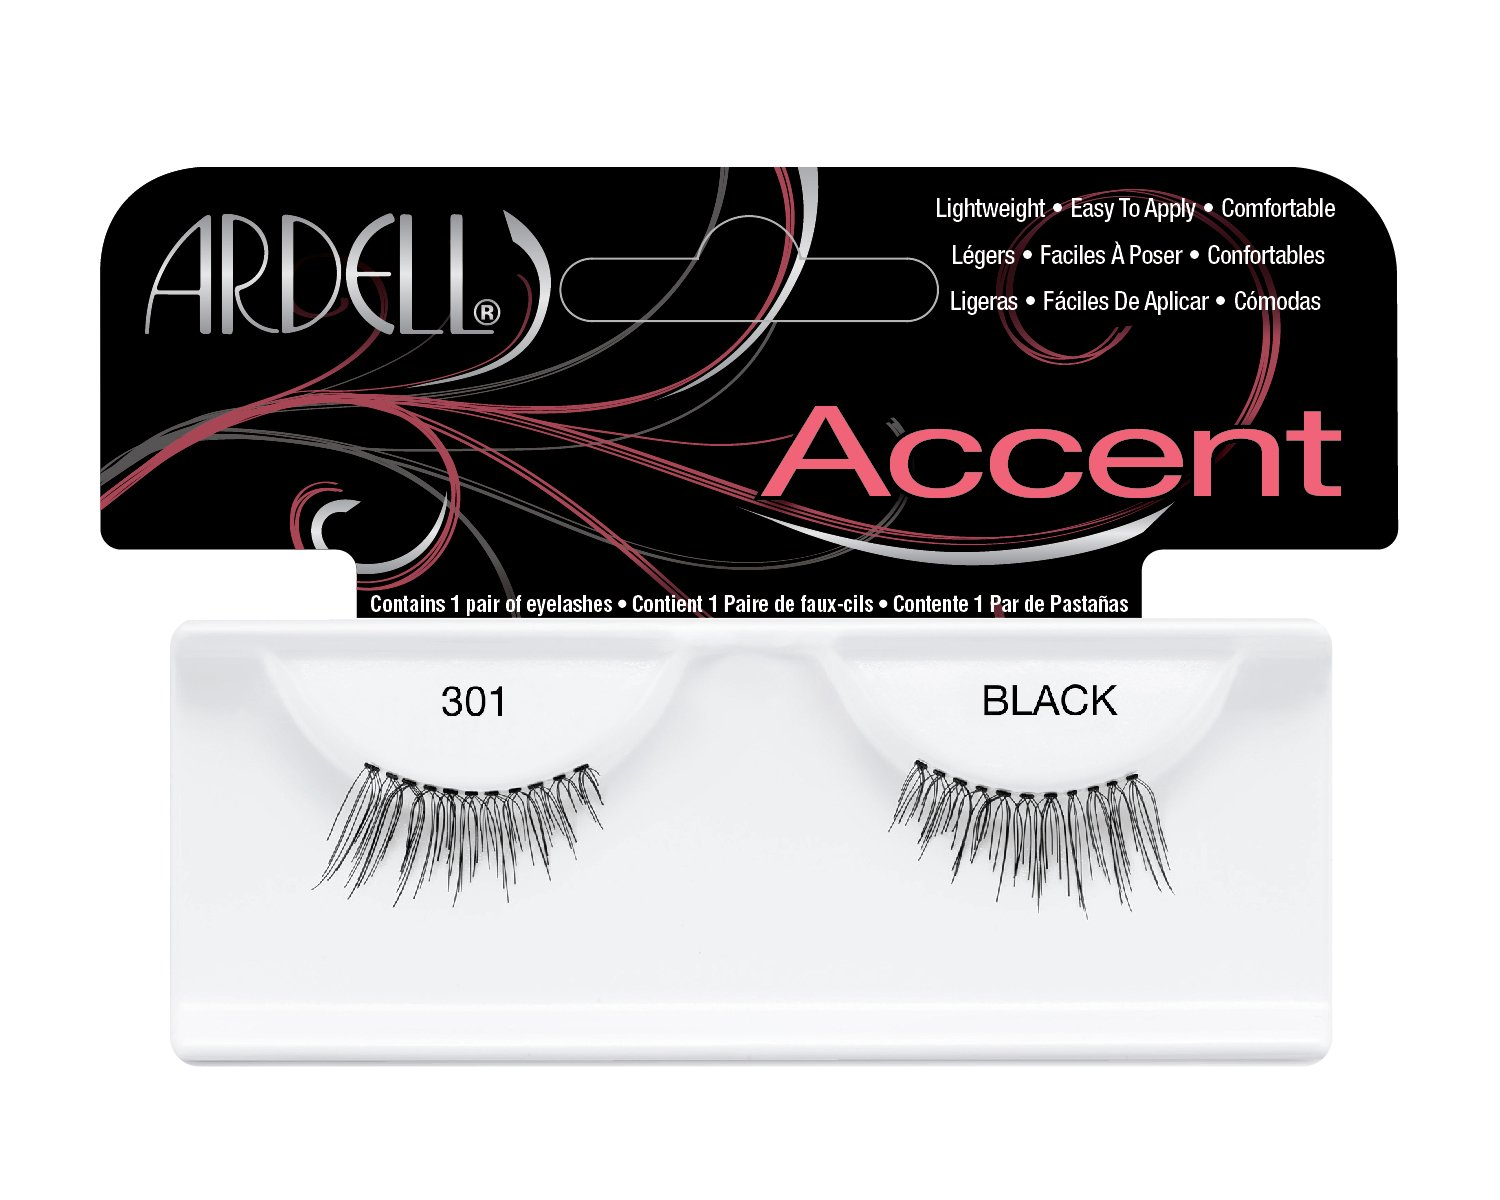 8260098ac26 Amazon.com : Ardell Lash Accents Pair Style 301, Black (Pack of 4) : Fake  Eyelashes And Adhesives : Beauty